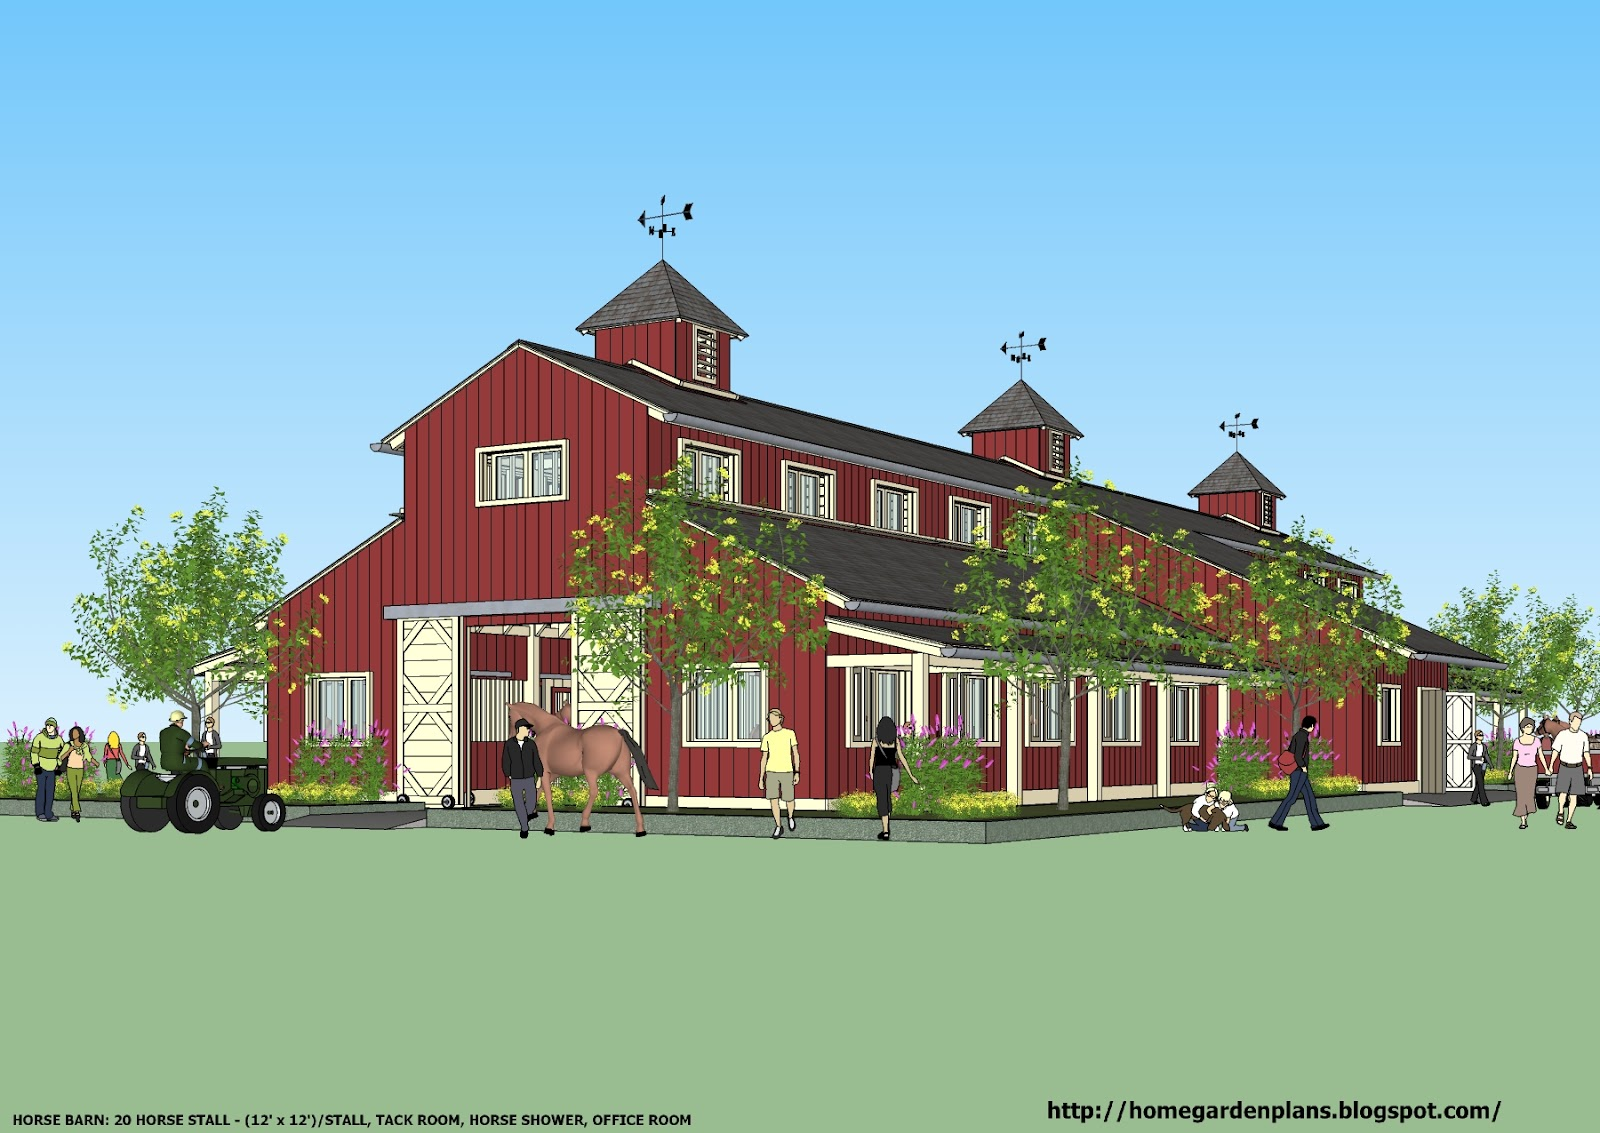 Home garden plans news b20h large horse barn plans for for House barn combo plans